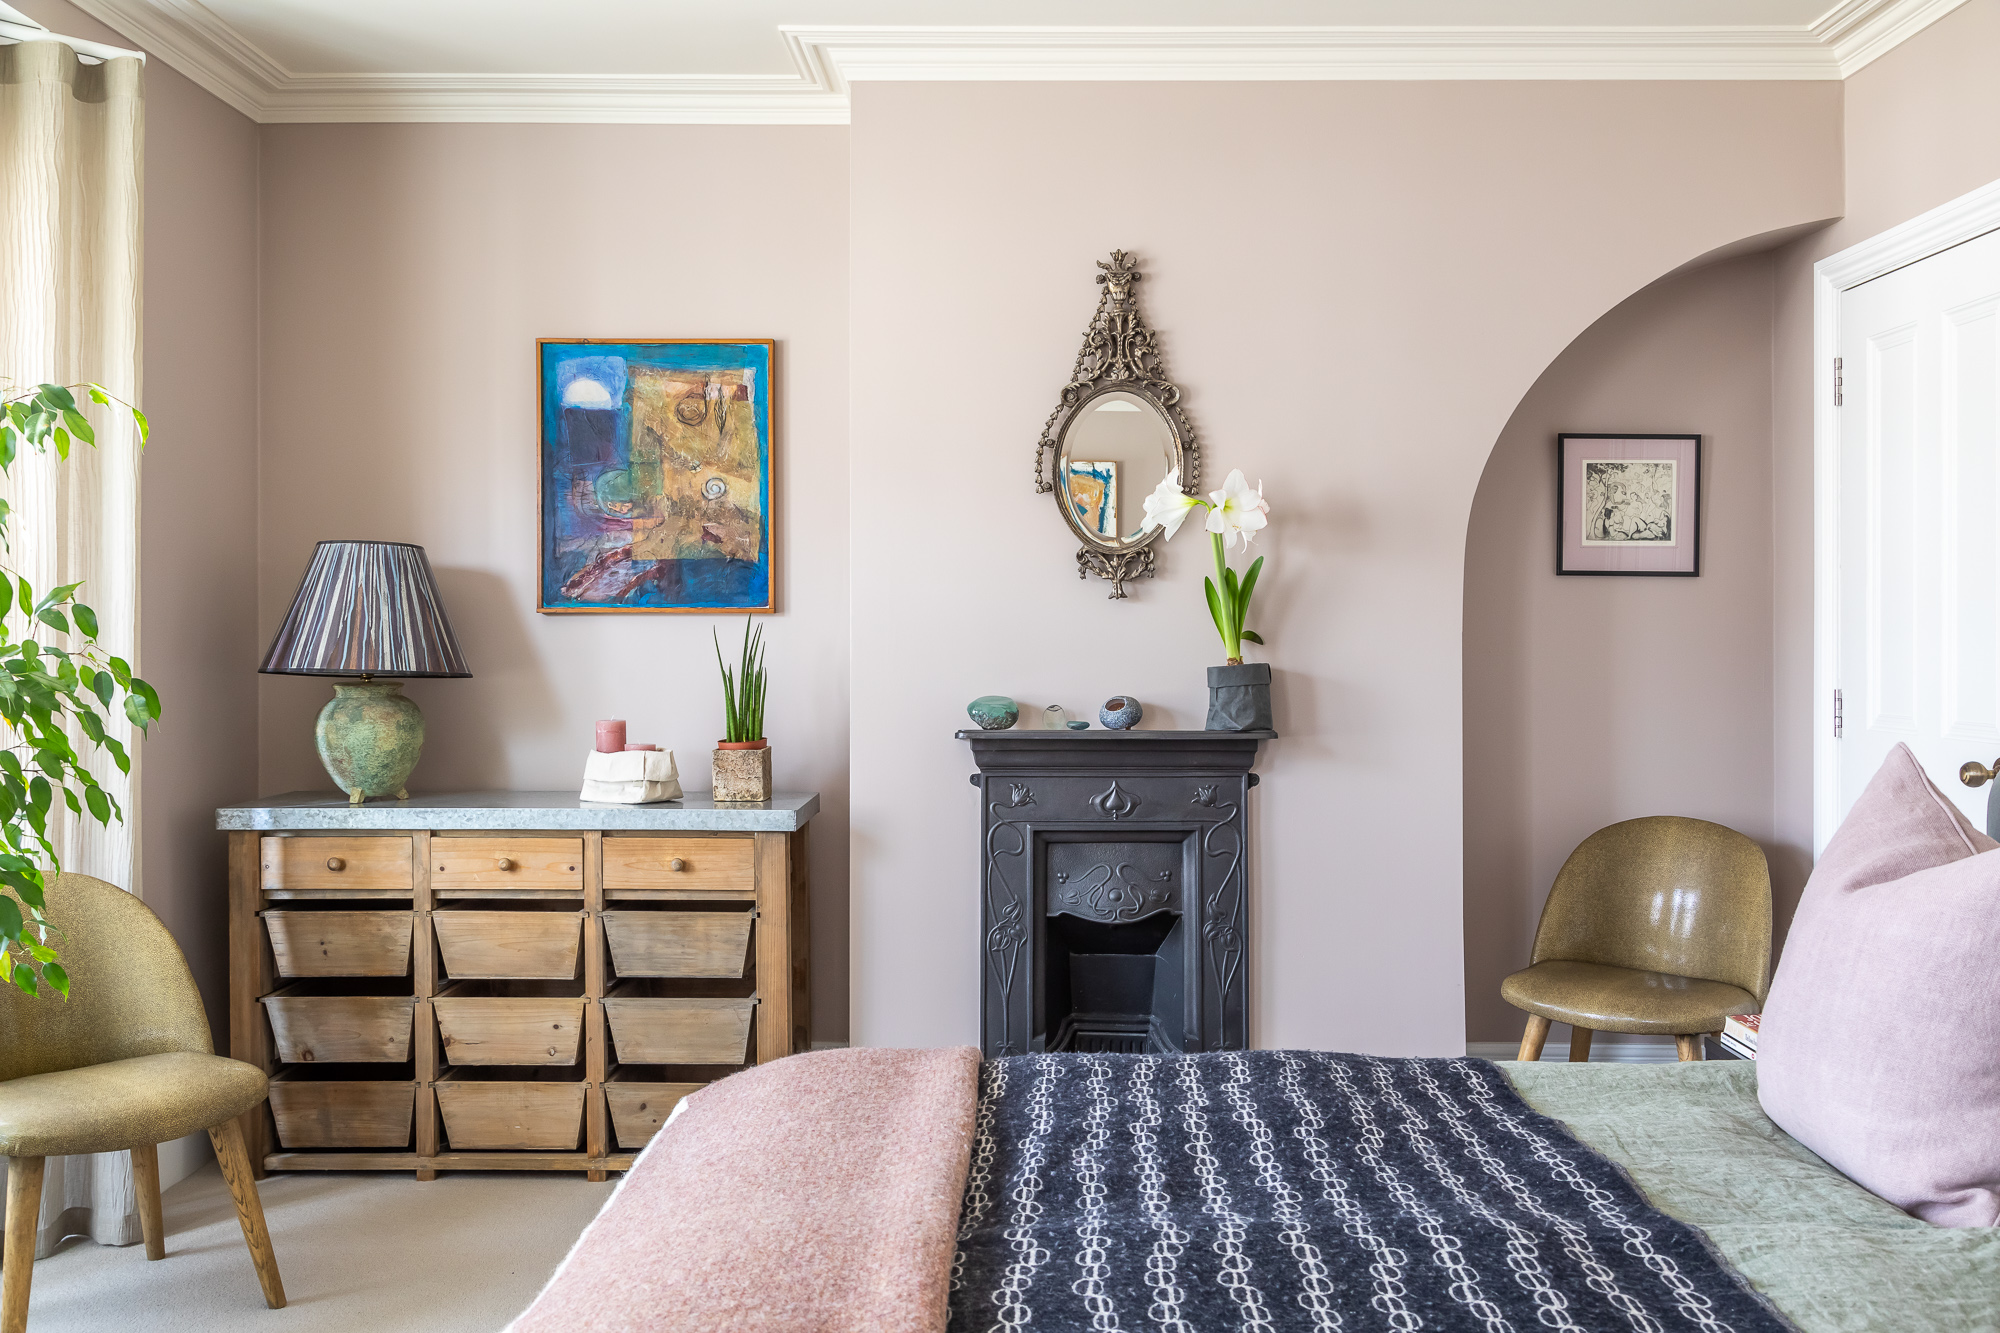 jonathan bond, mauve bedroom, mill road, cambridge